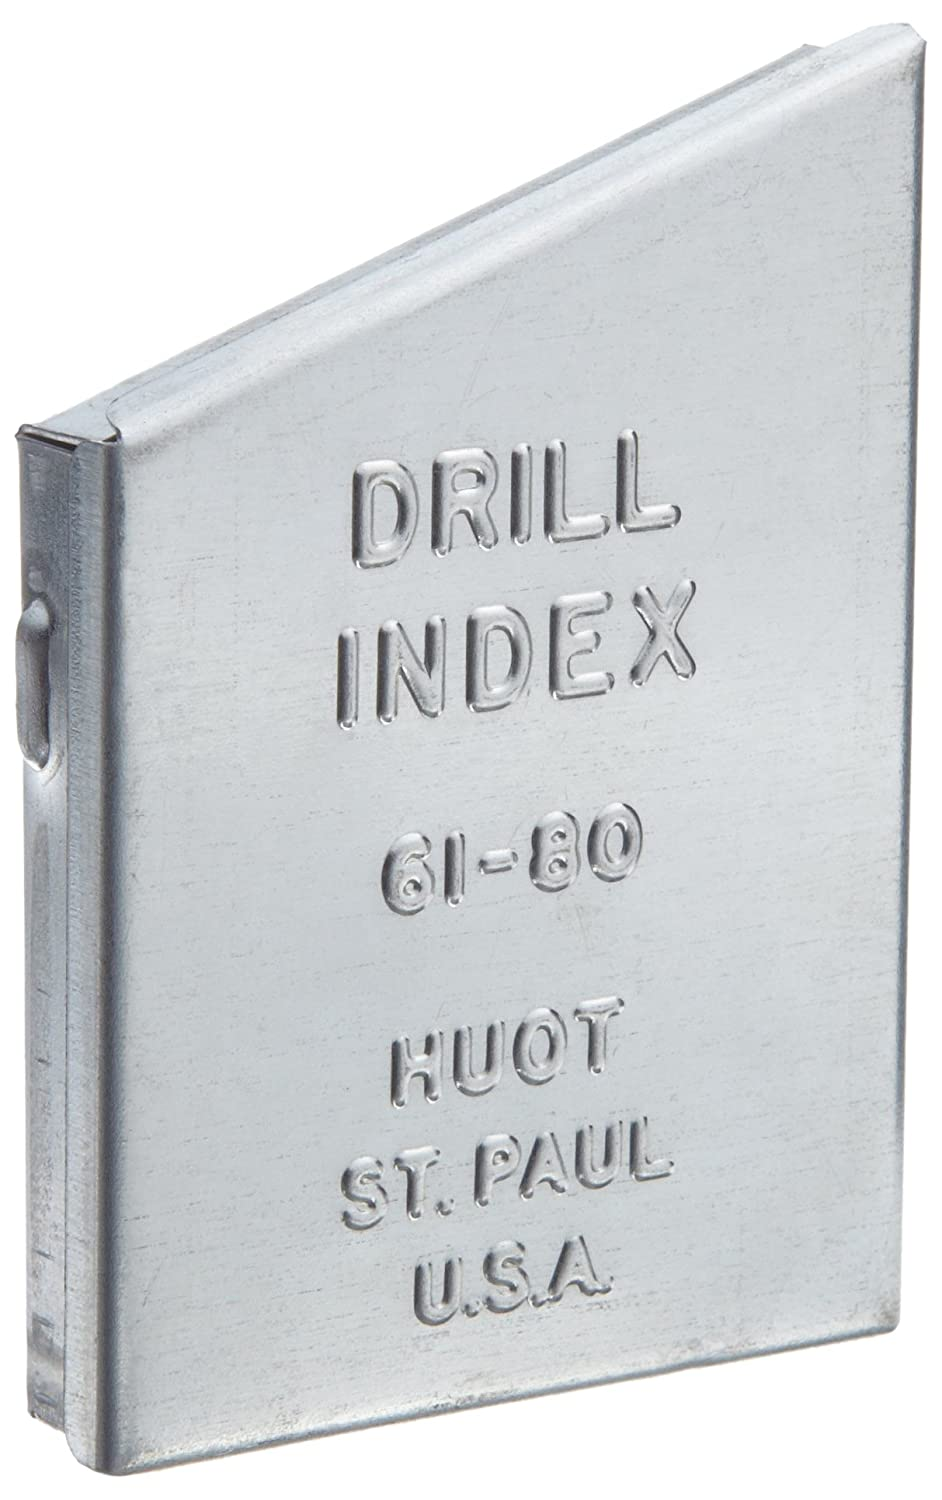 Huot 10400 drill bit index for wire gauge sizes 61 to 80 amazon huot 10400 drill bit index for wire gauge sizes 61 to 80 amazon industrial scientific greentooth